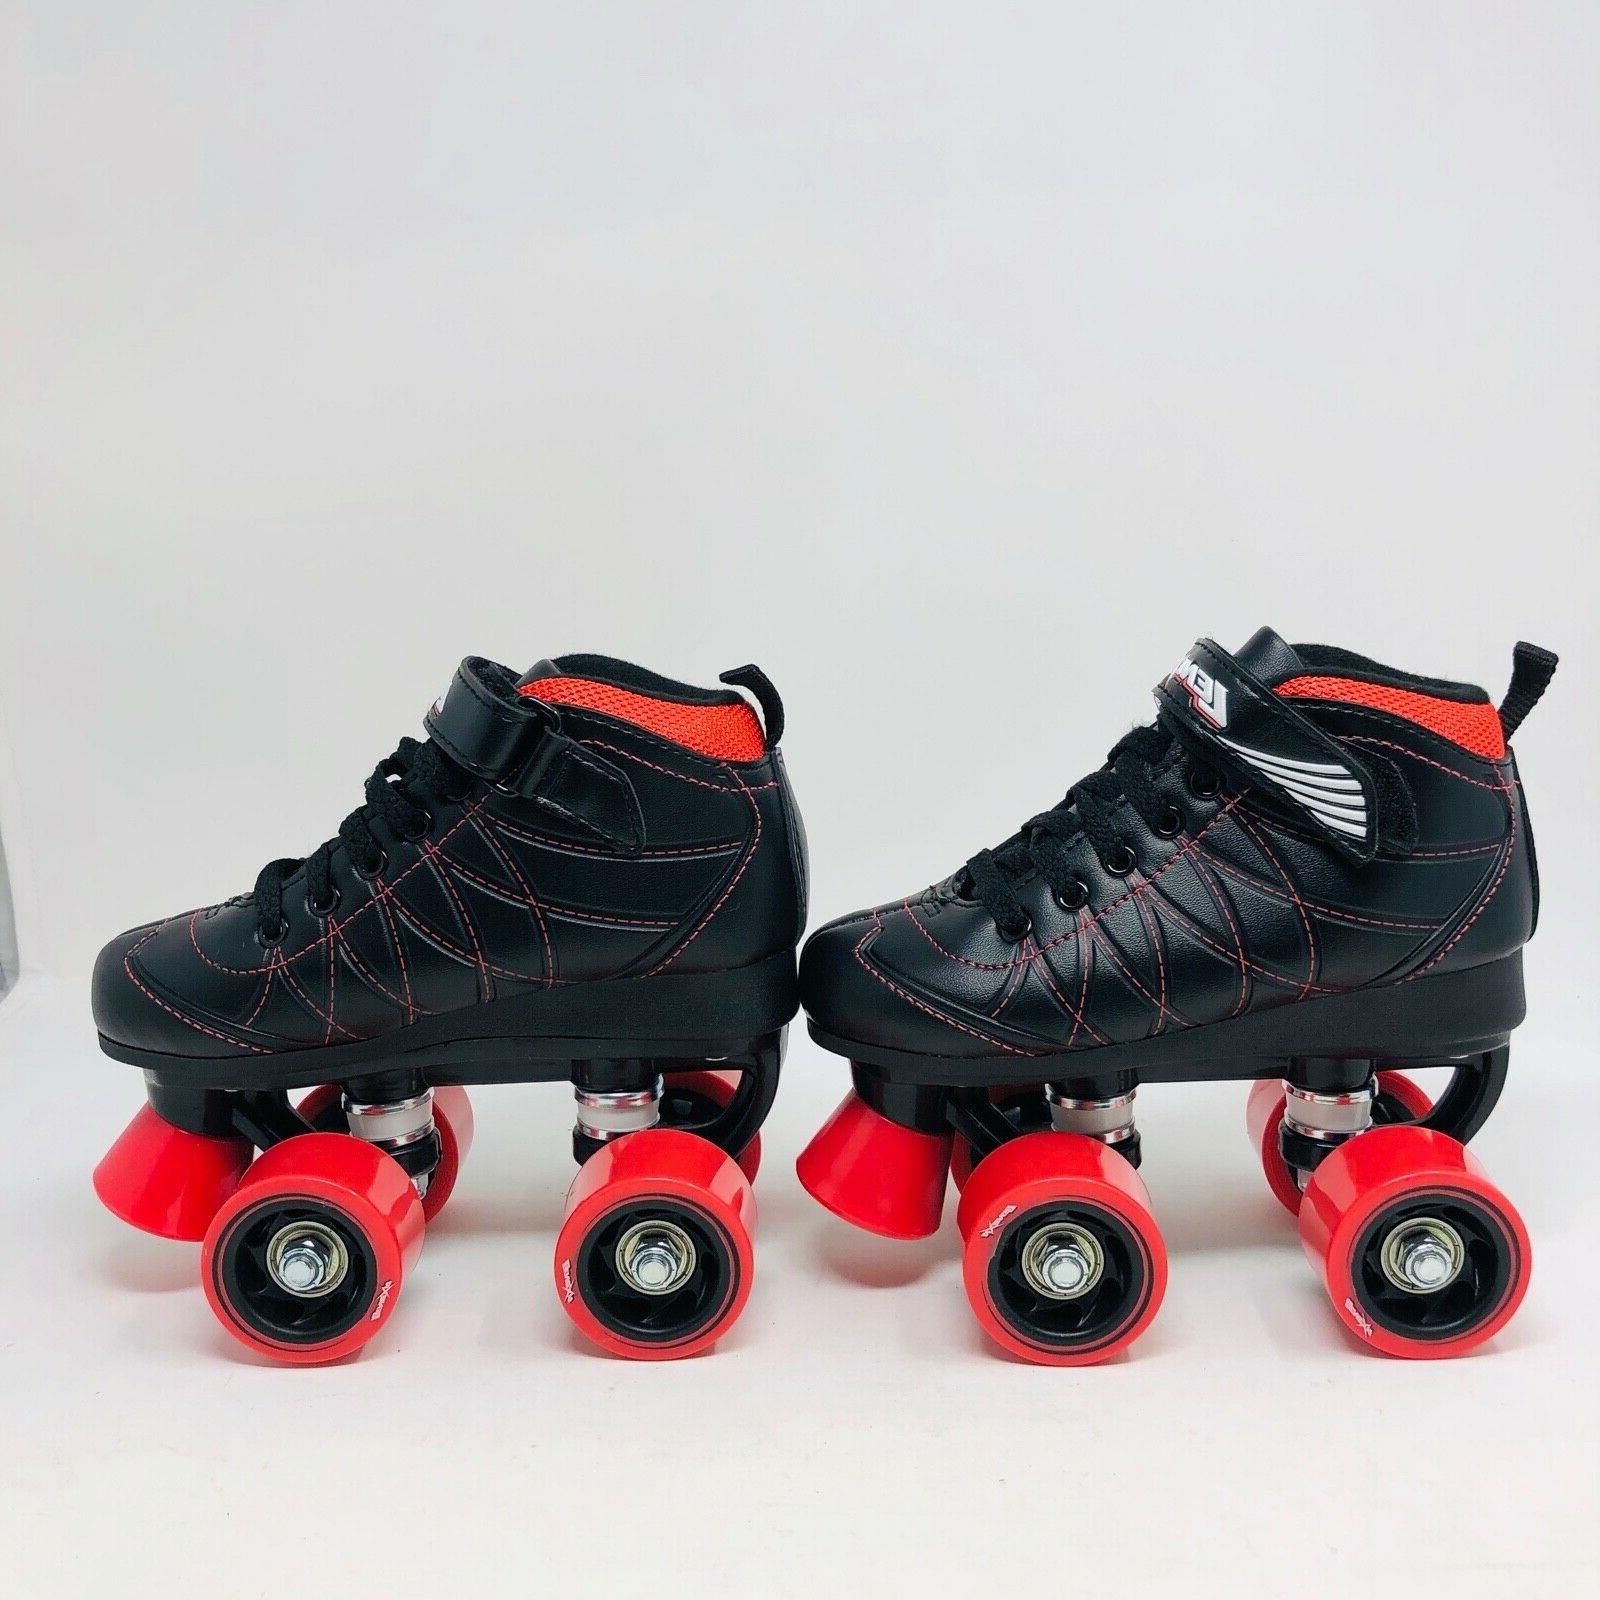 Lenexa Roller Skates Kids Skate for J13